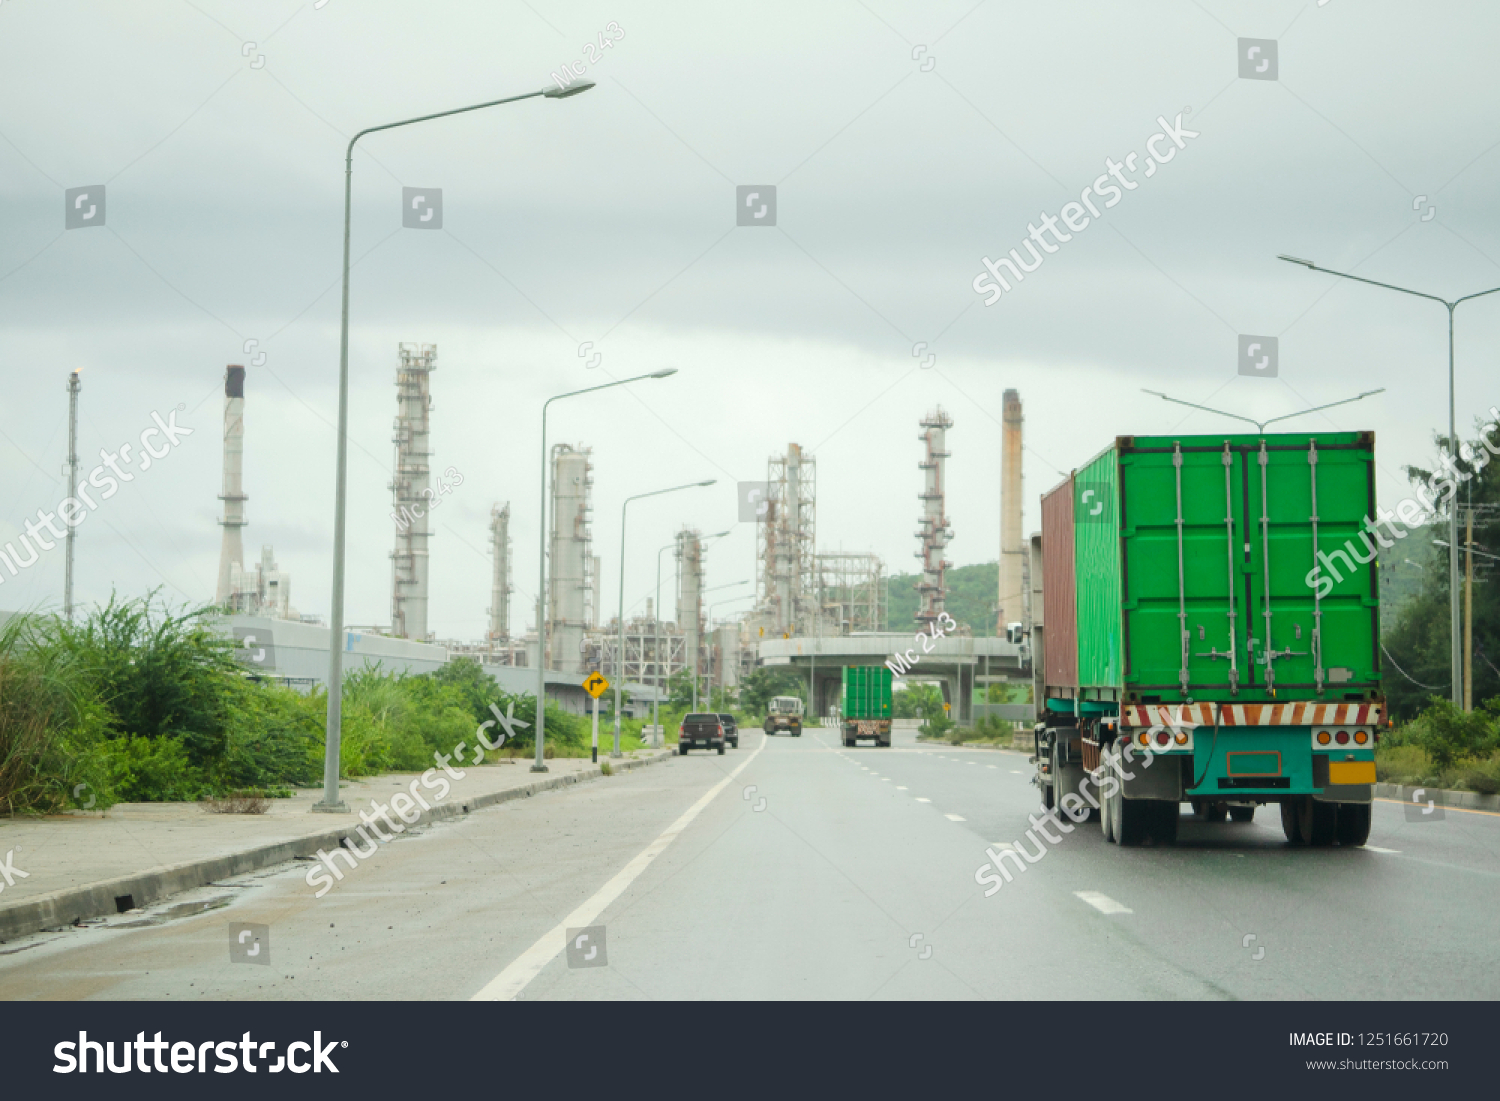 Truck on highway road container, transportation concept.,import,export logistic industrial Transporting Land transport on the asphalt expressway #1251661720